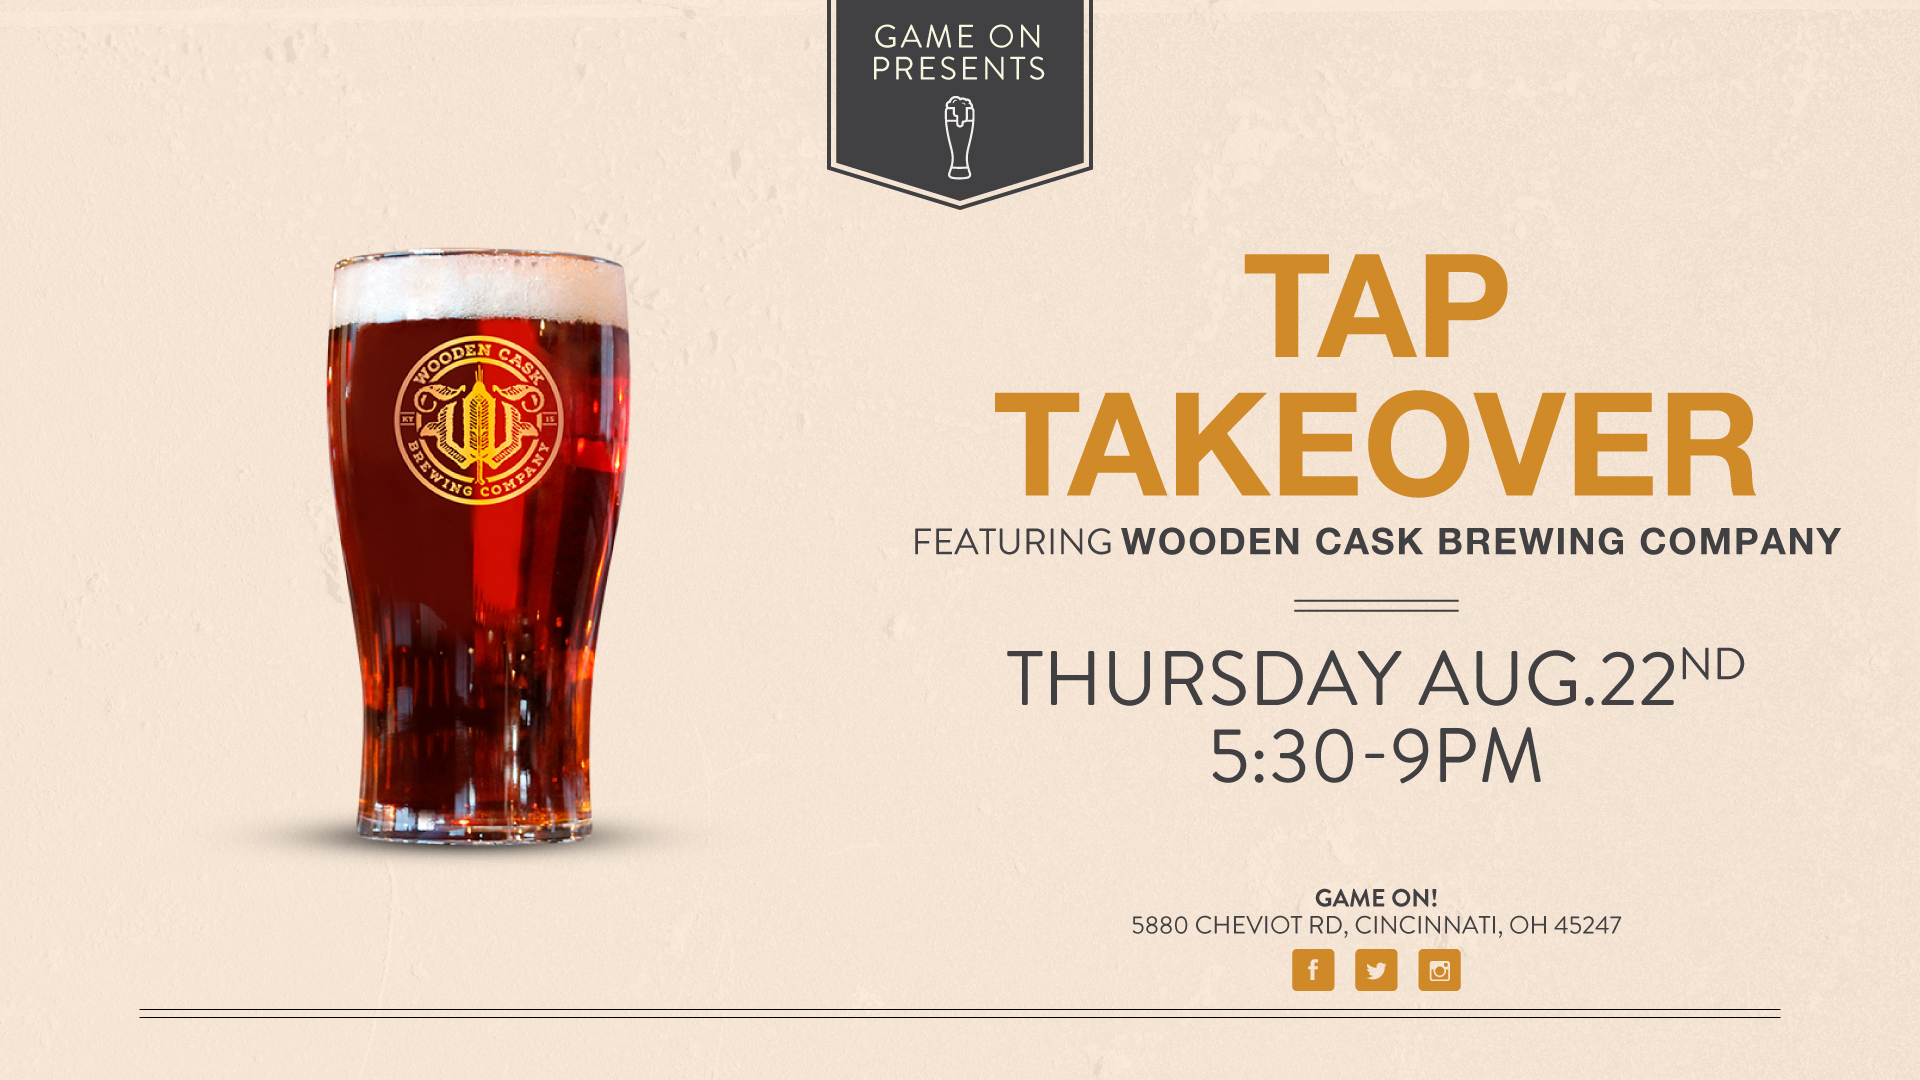 Tape Takeover Wooden Cask Brewing Company Game On